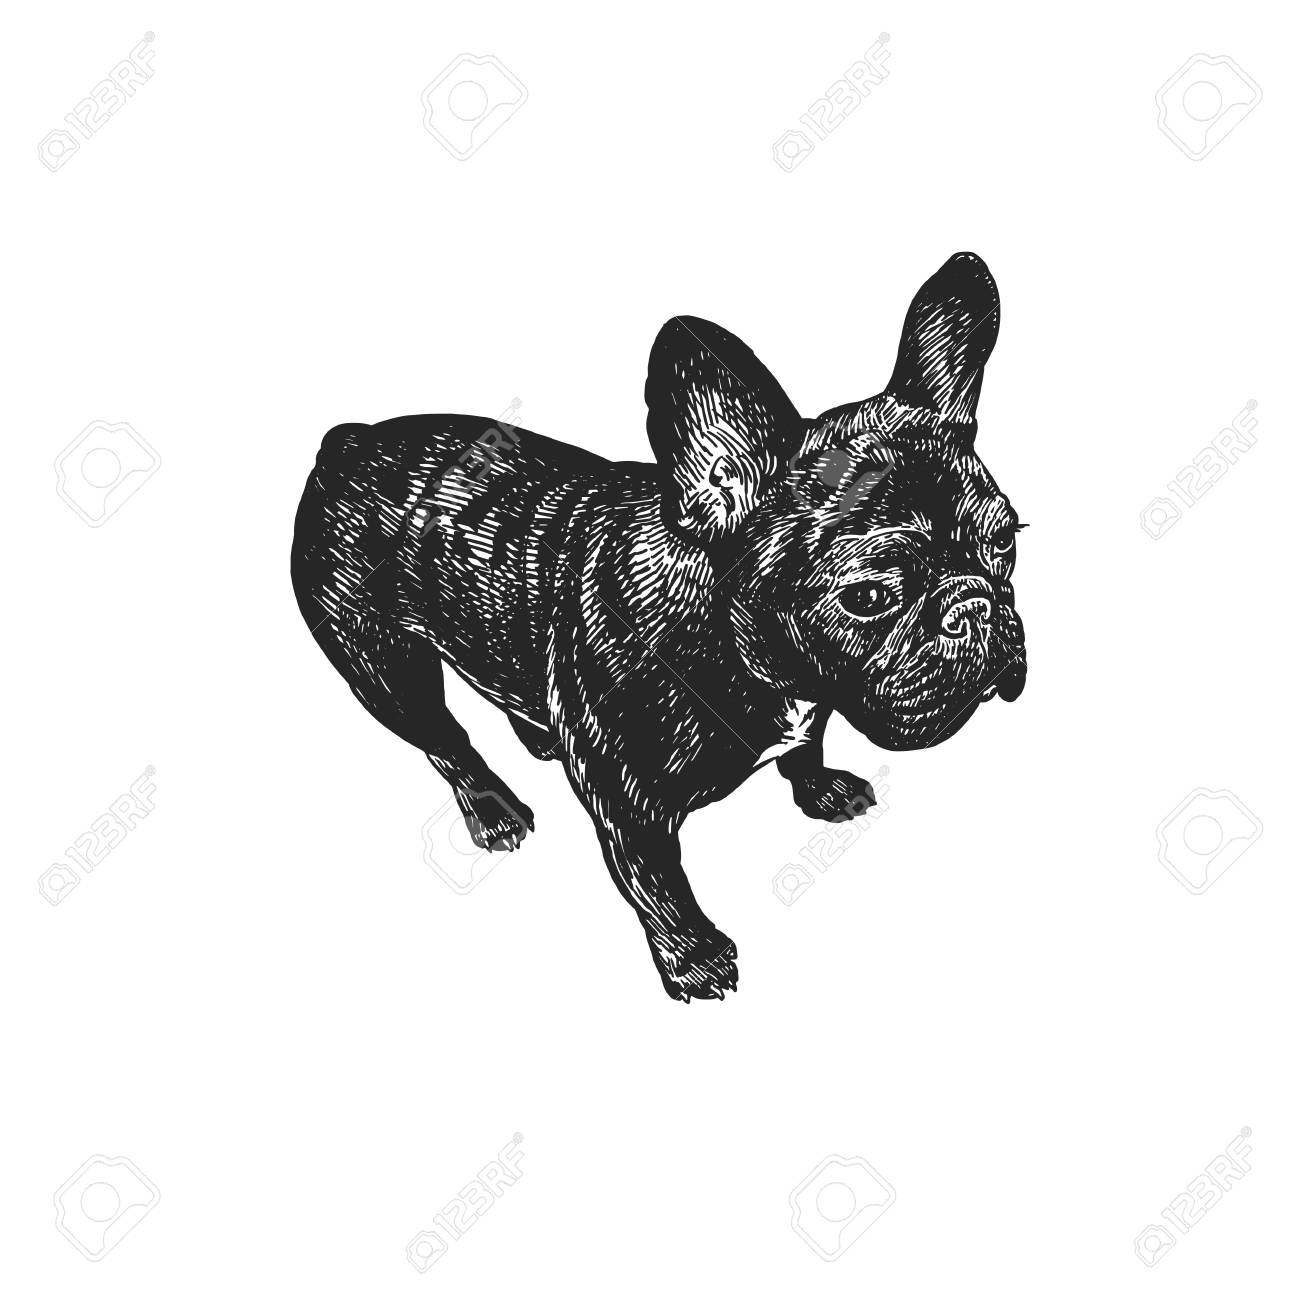 Cute puppy  Home pet isolated on white background  Sketch  Vector